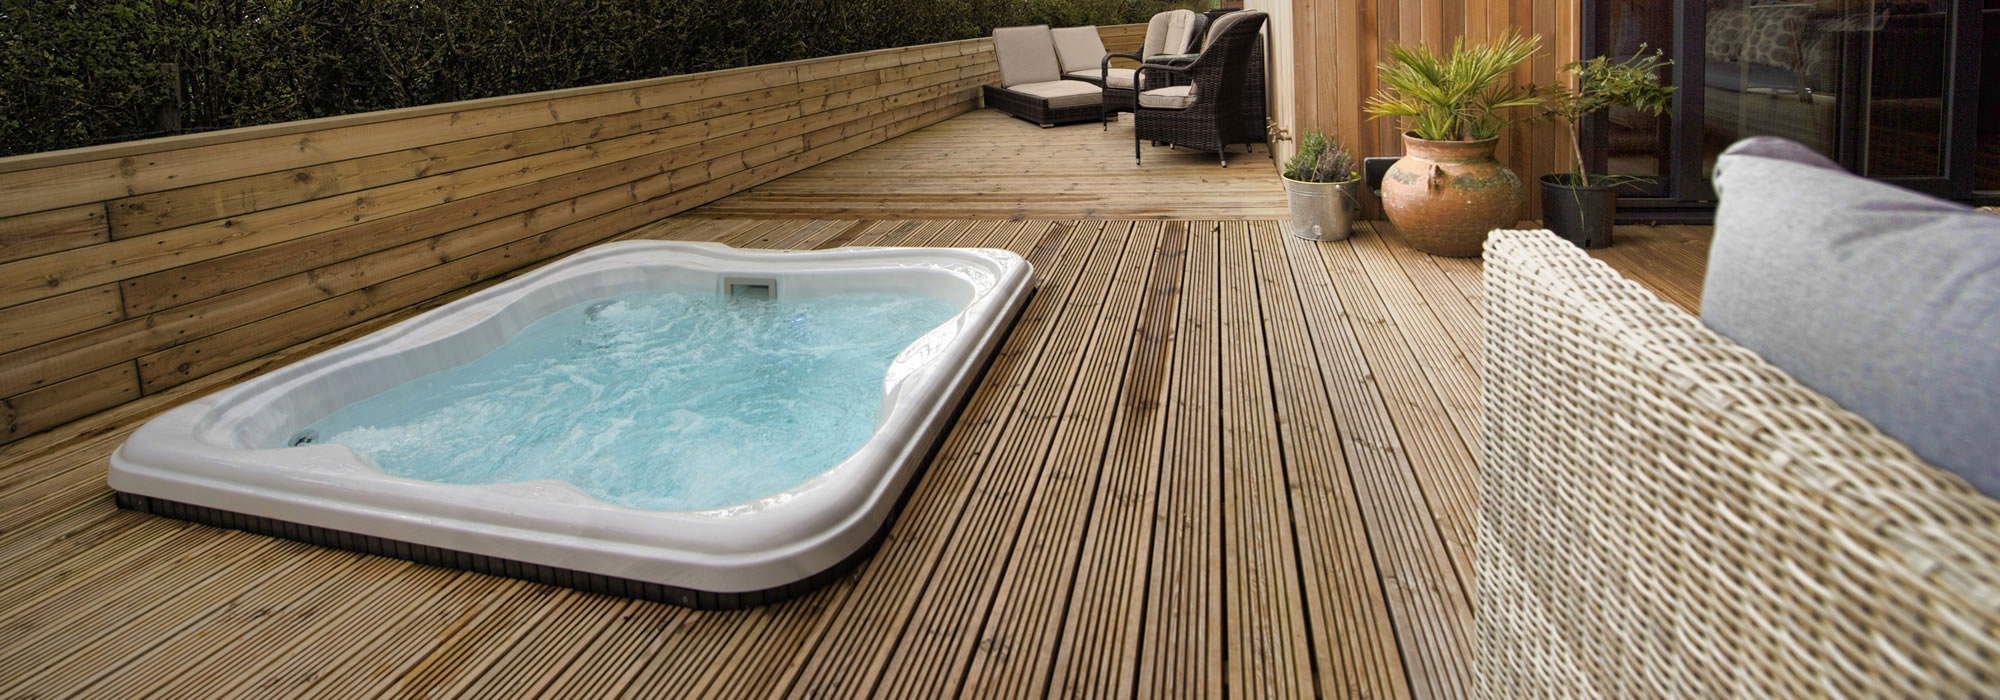 Jacuzzi on the decking